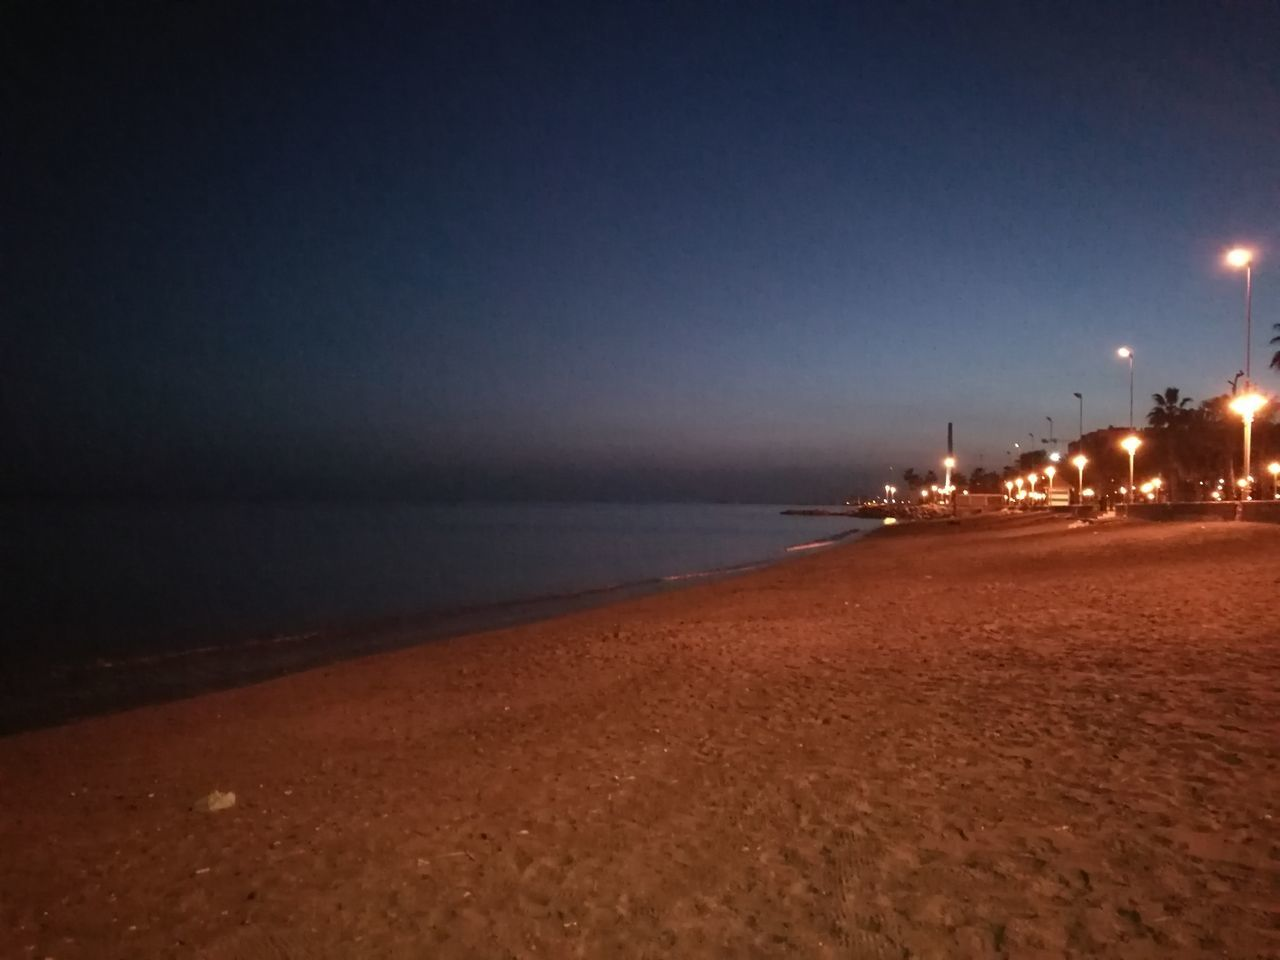 illuminated, sea, night, beach, water, dusk, no people, sky, tranquility, outdoors, horizon over water, sand, scenics, nature, beauty in nature, oil industry, clear sky, architecture, city